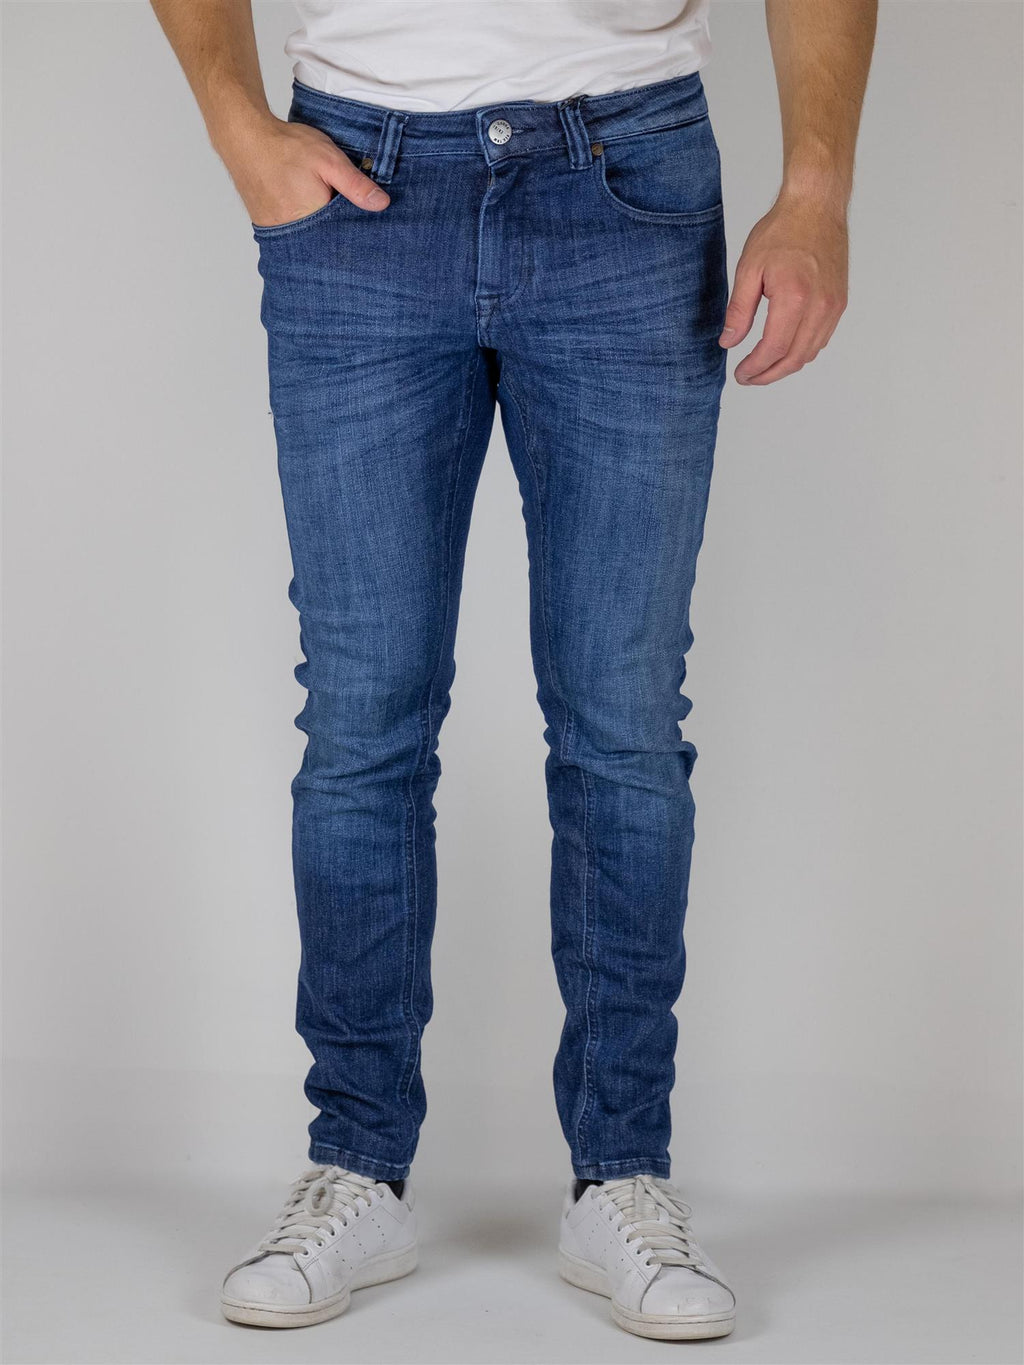 Jones Flex Jeans K3412 - Medium Blue Denim